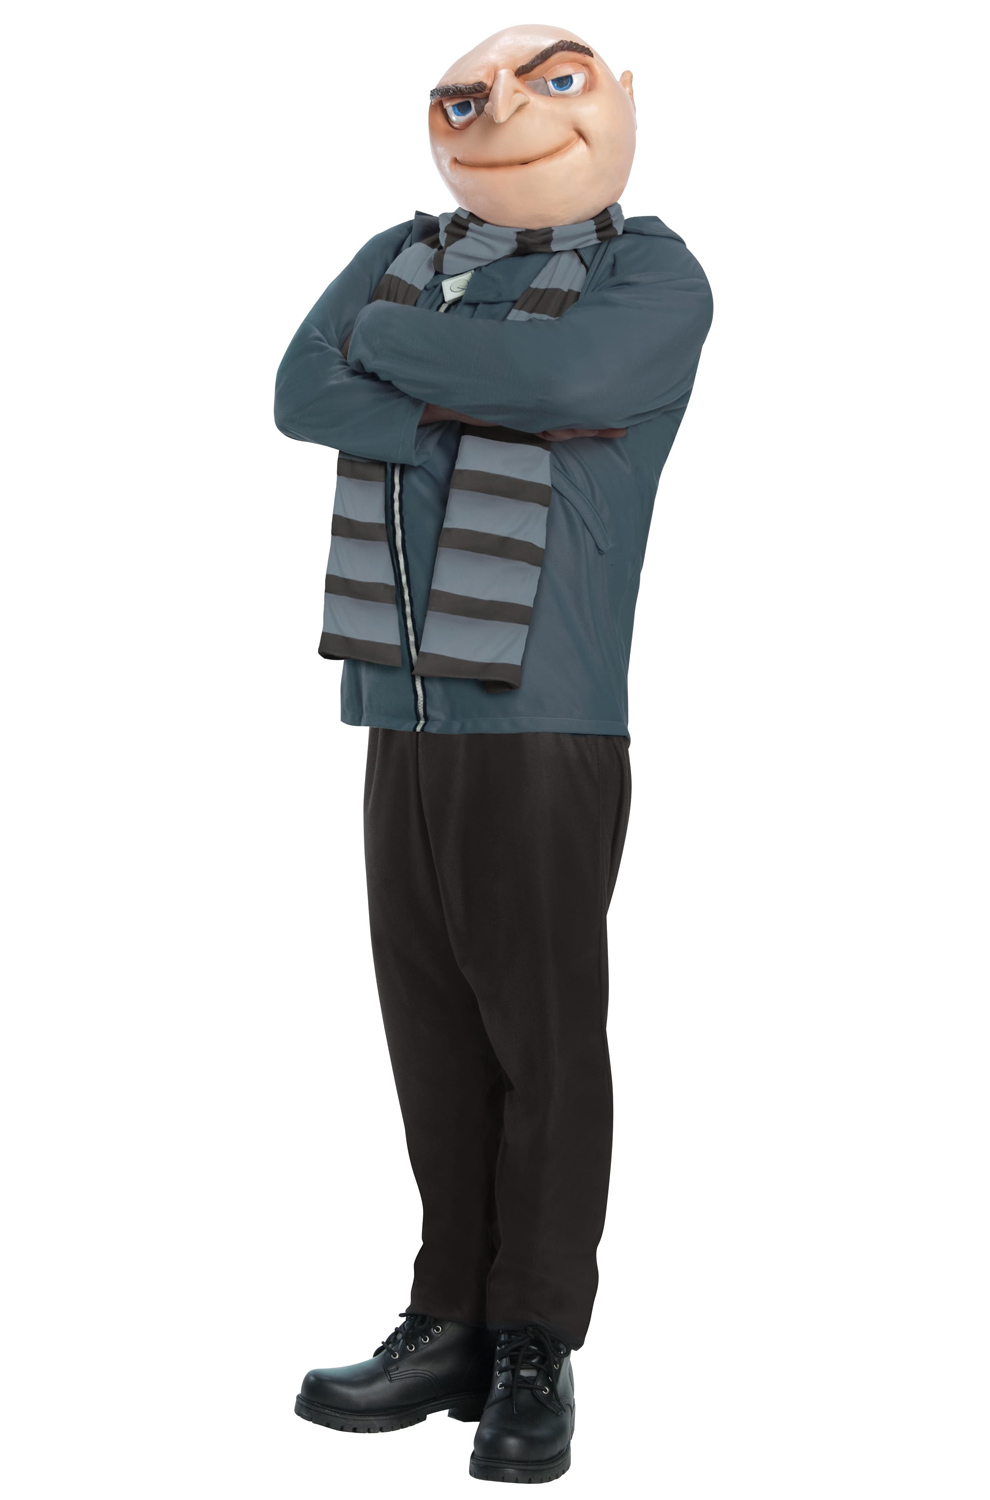 Despicable Me 2 Gru Adult Size Costume